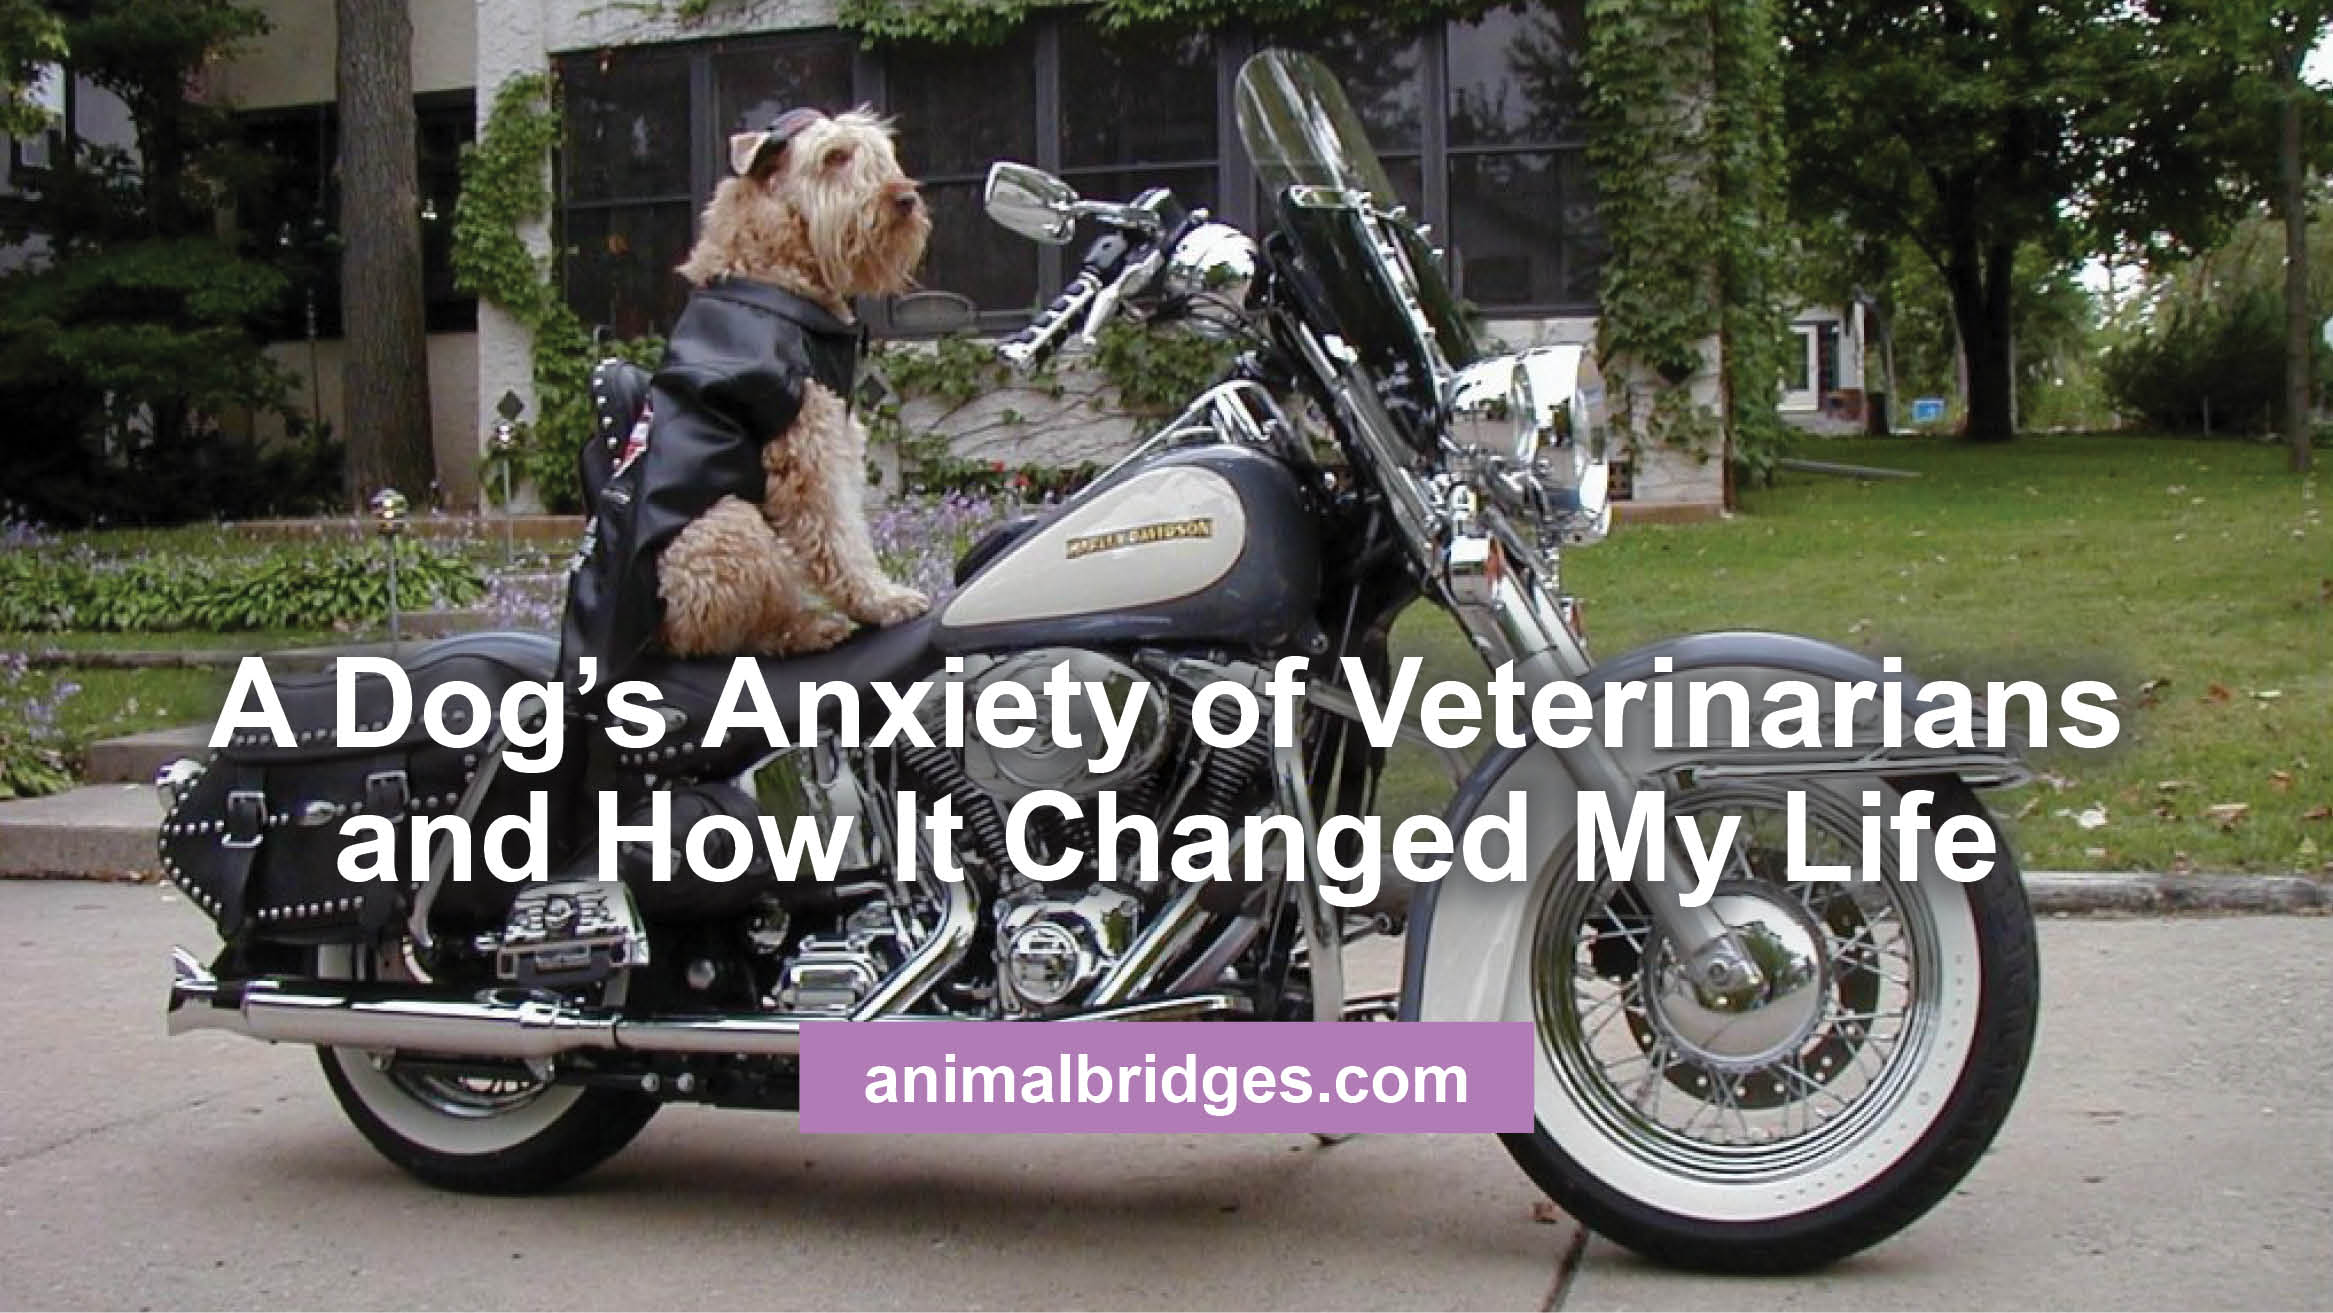 dogs-anxiety-of-veterinarians